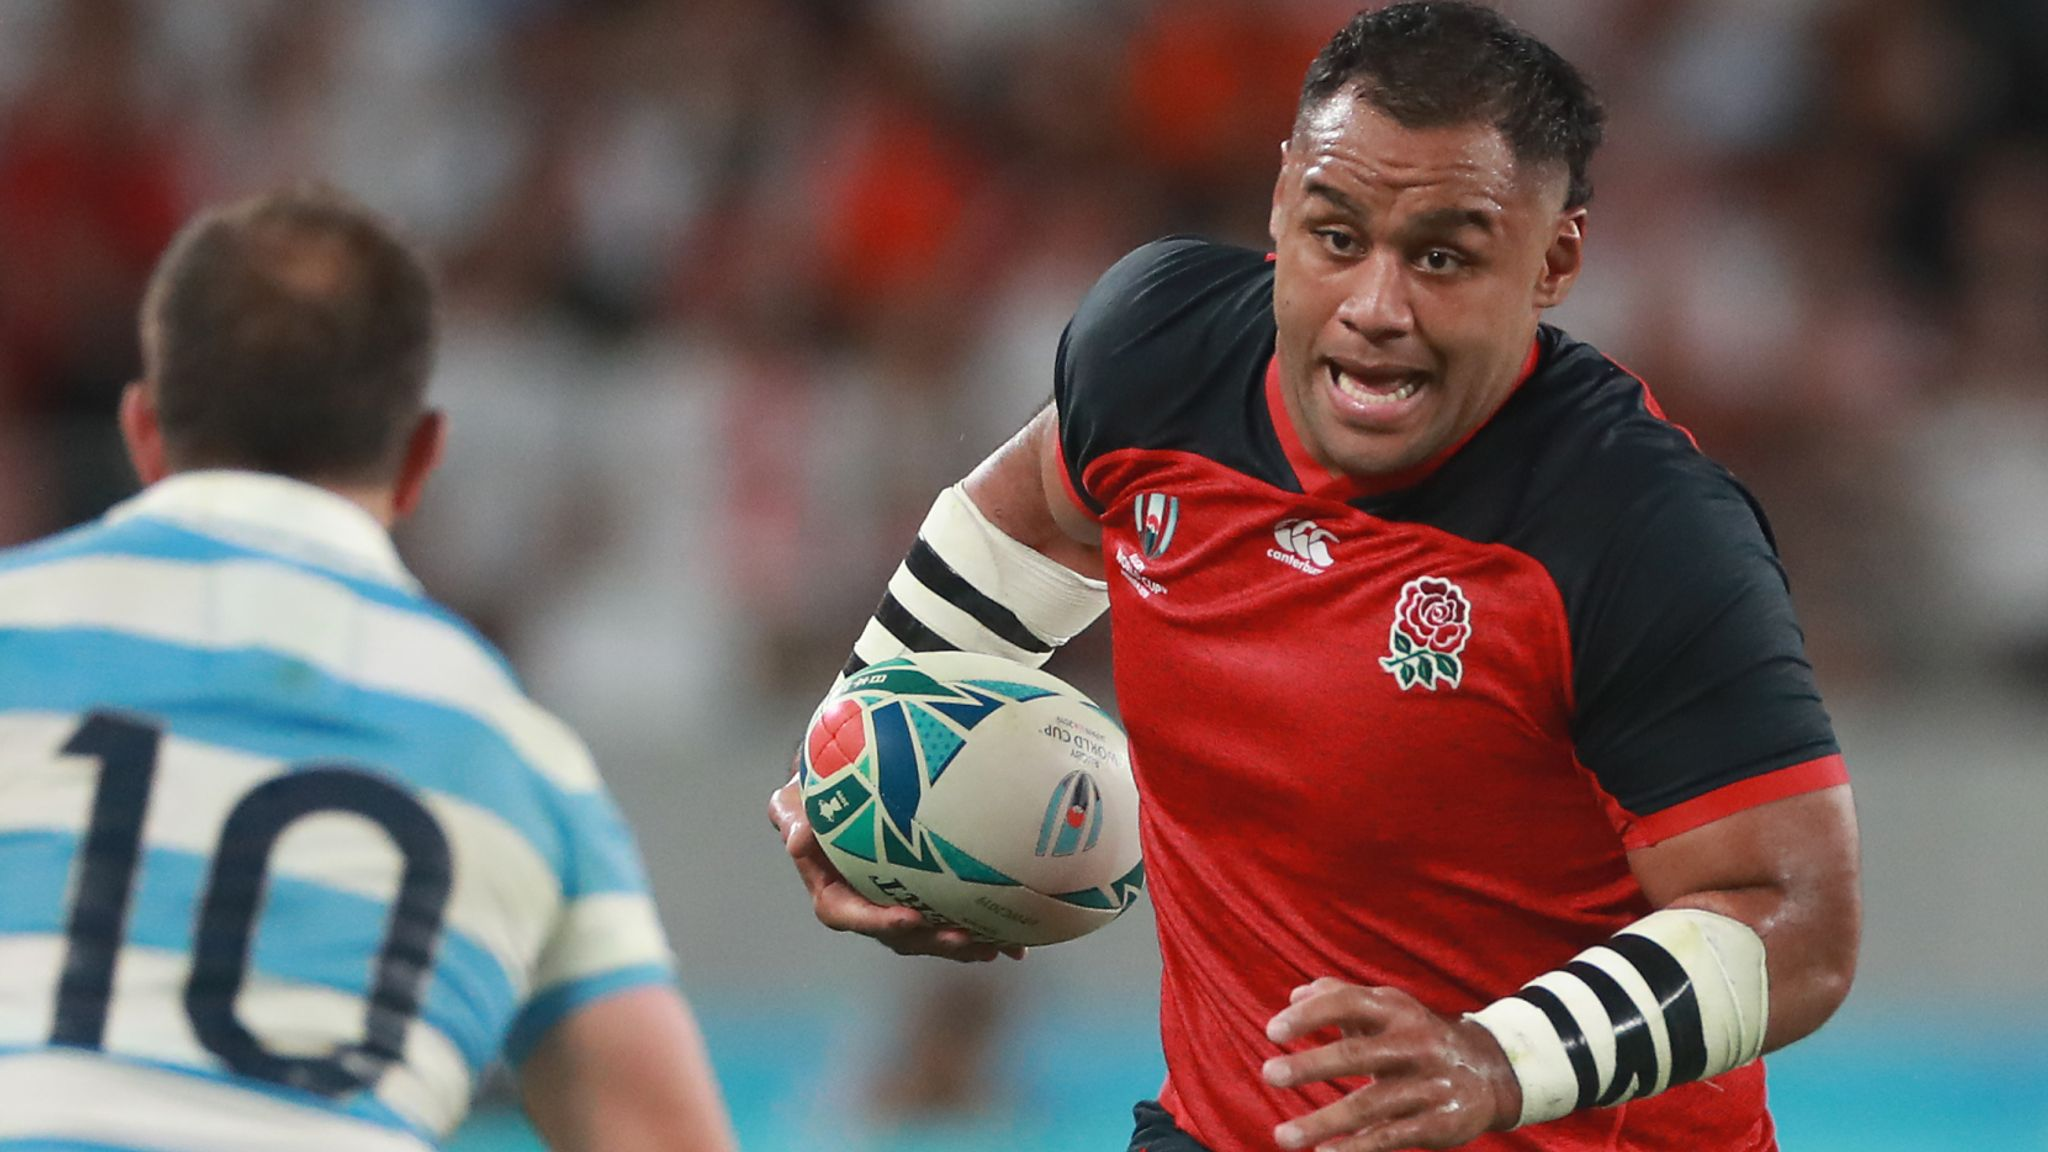 Billy Vunipola fit for England's World Cup quarter-final with Australia